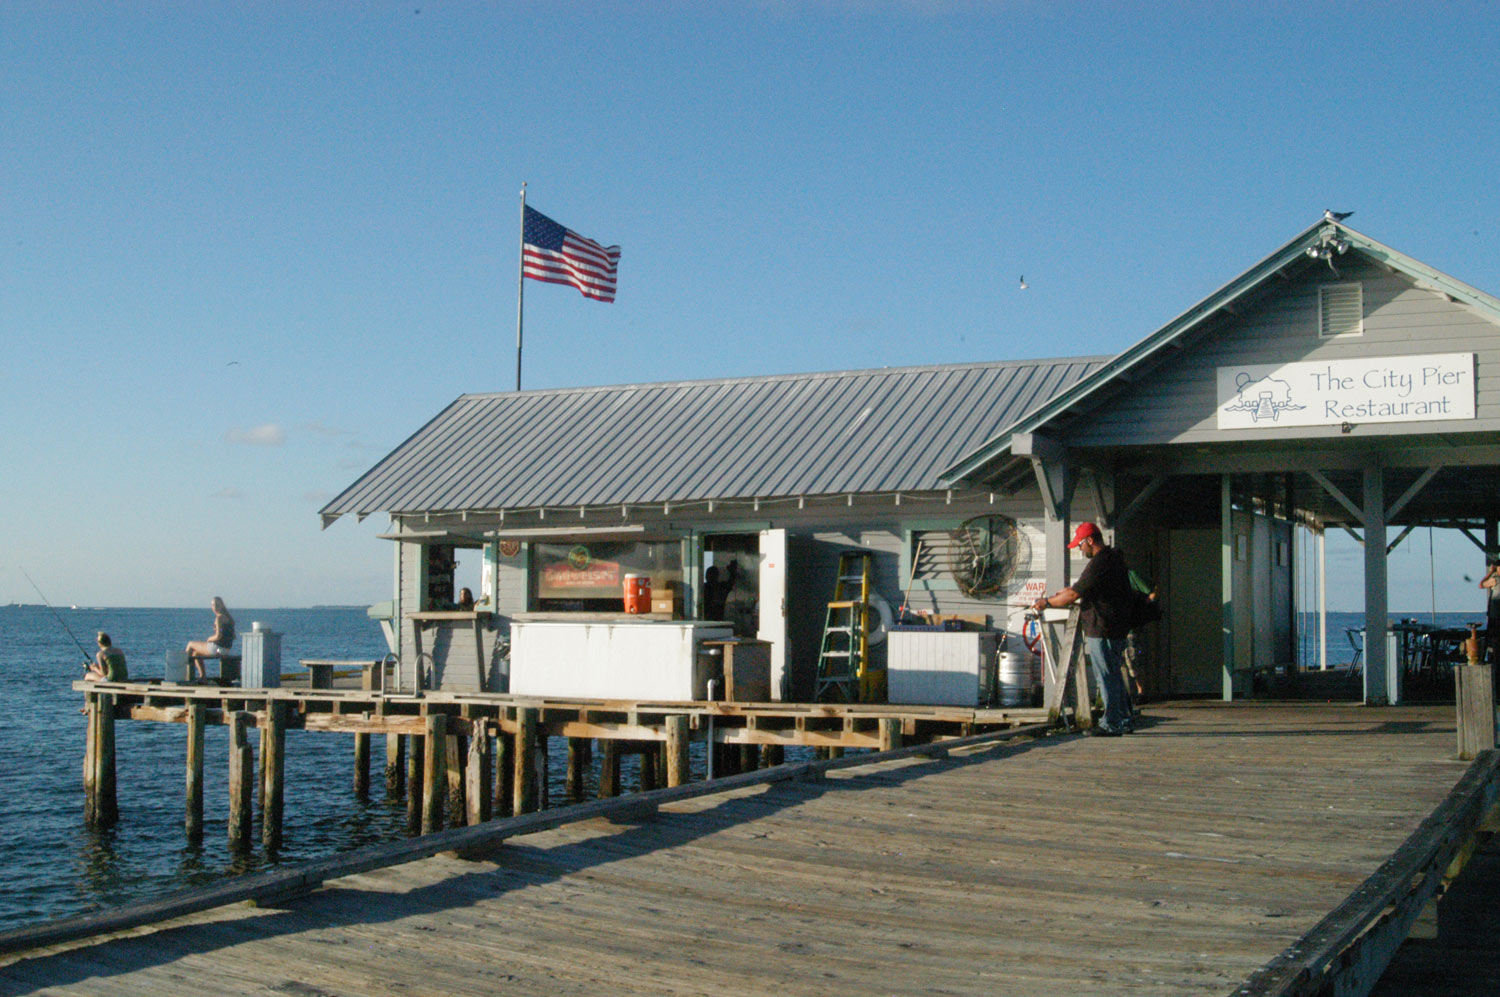 One of the building on the pier